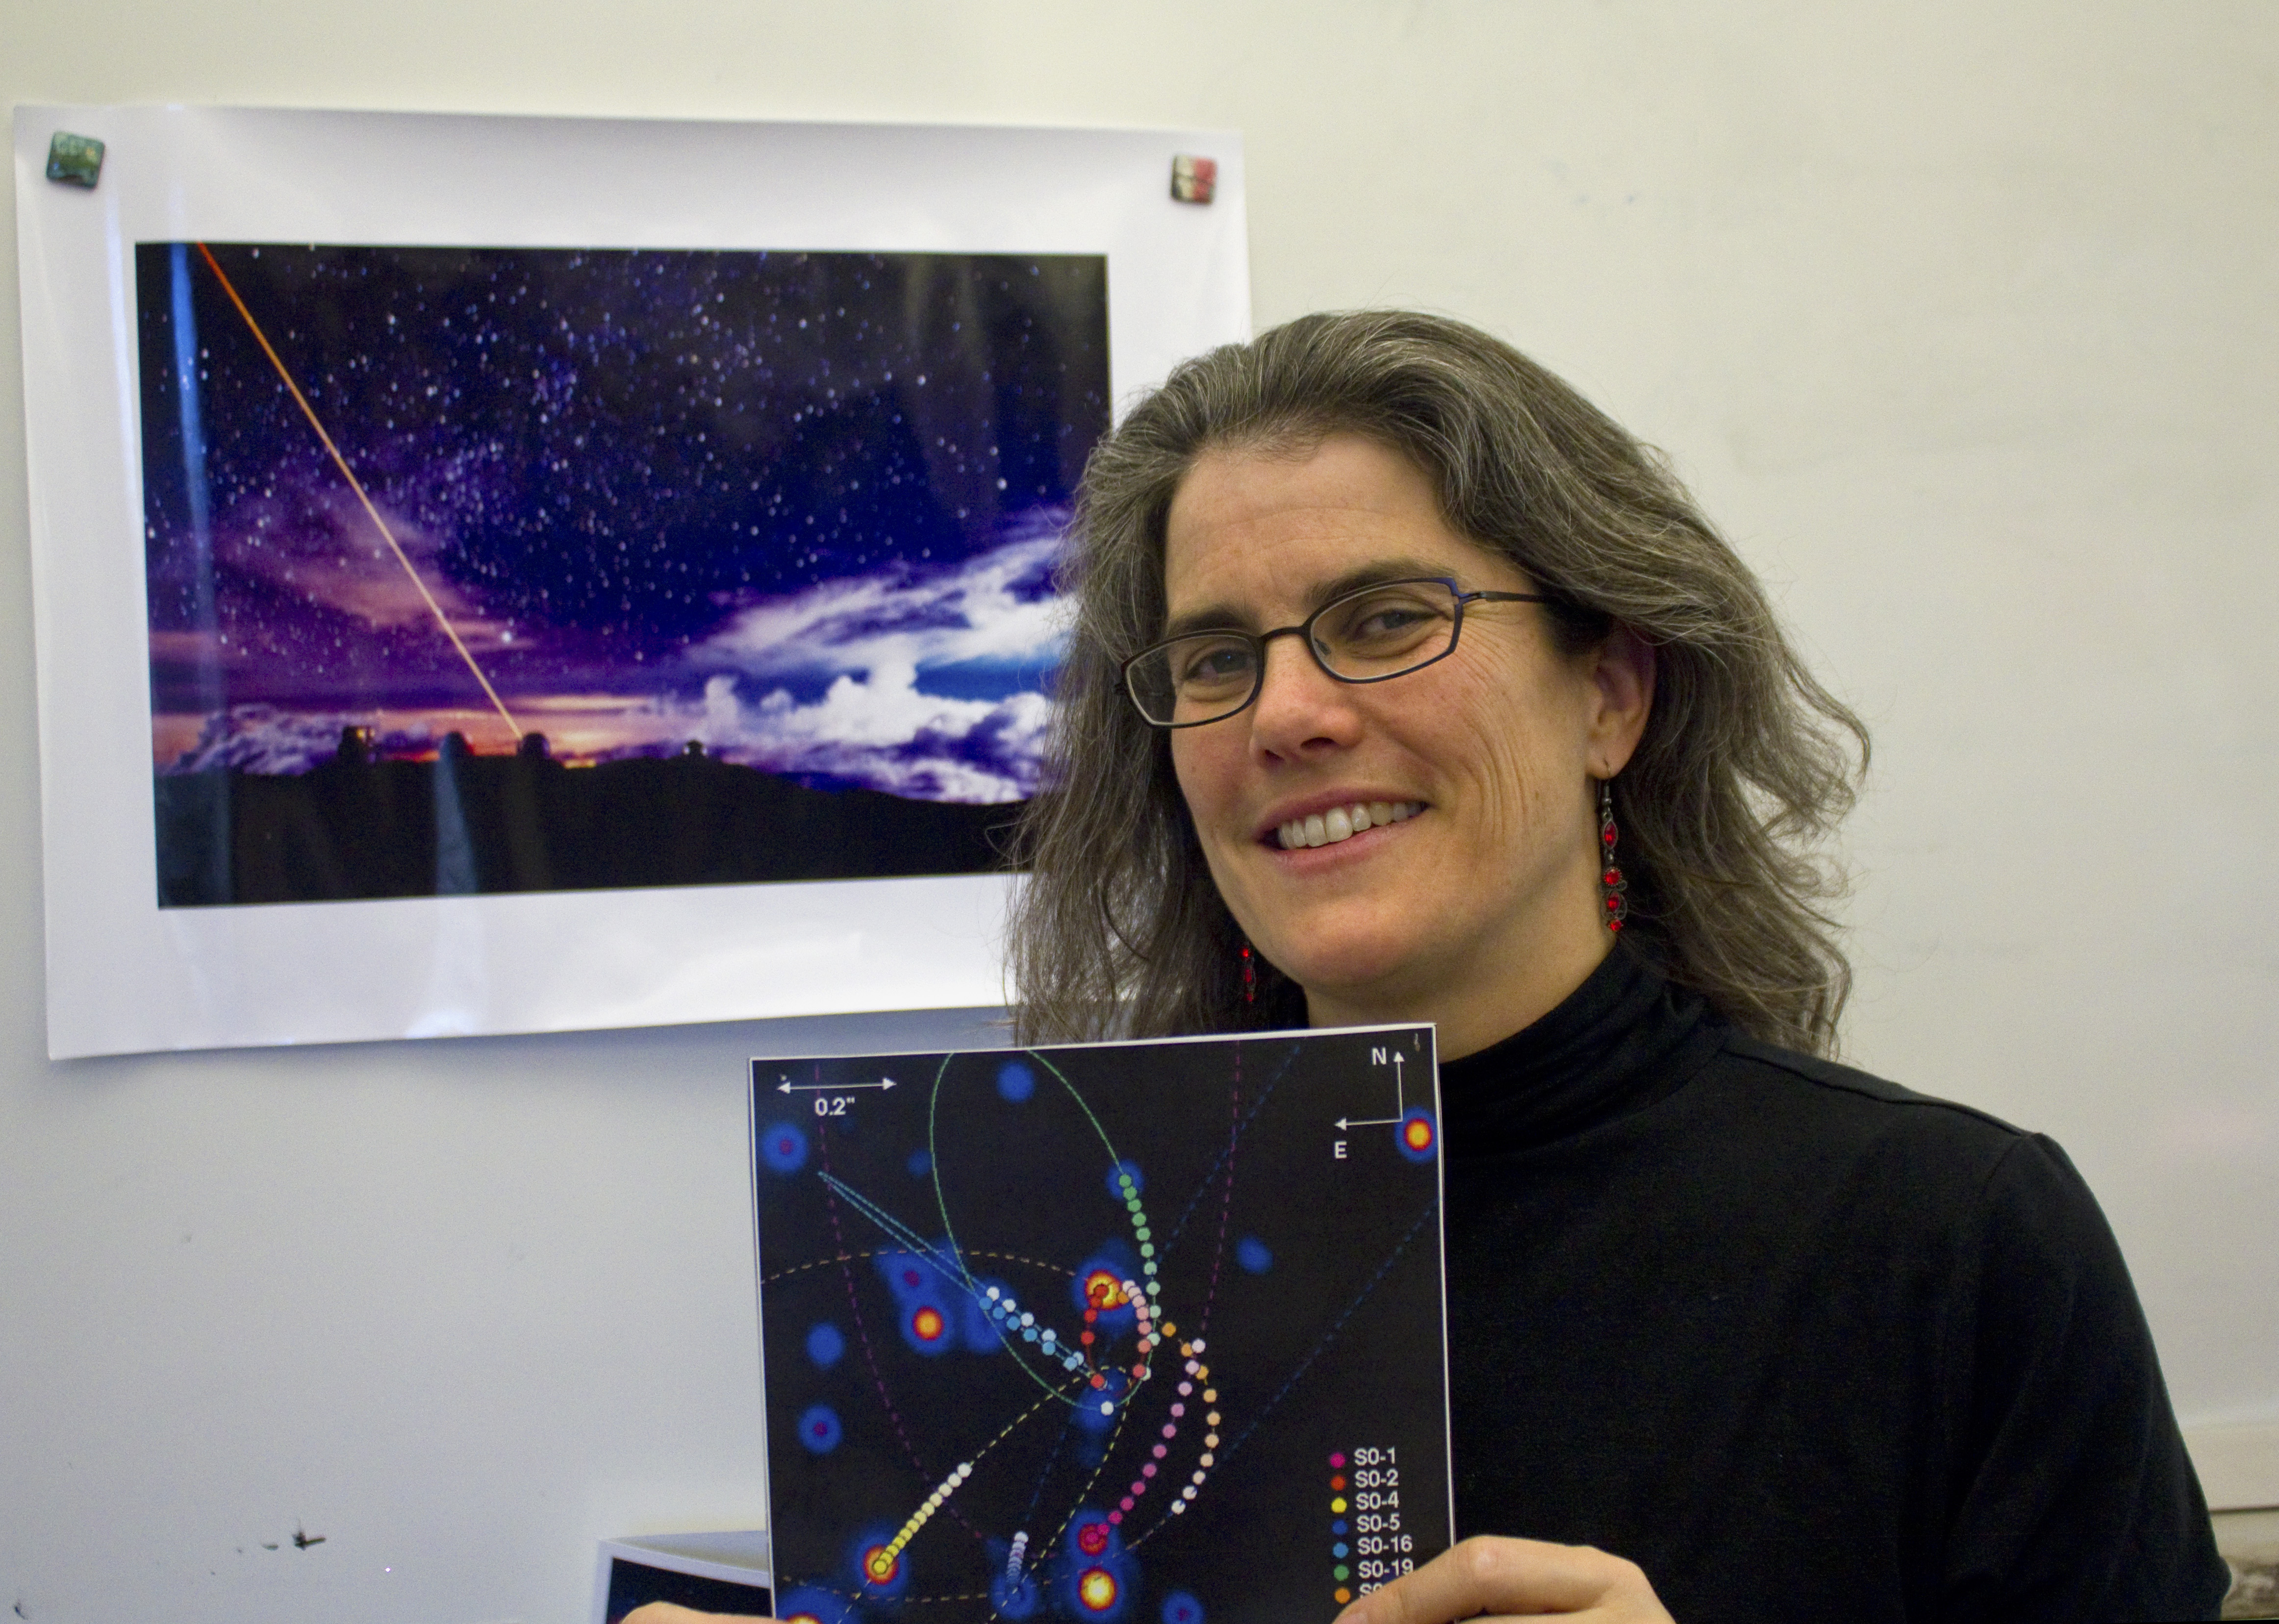 Ucla Astrophysicist Andrea Ghez Becomes The First Woman To Win The Crafoord Prize Daily Bruin